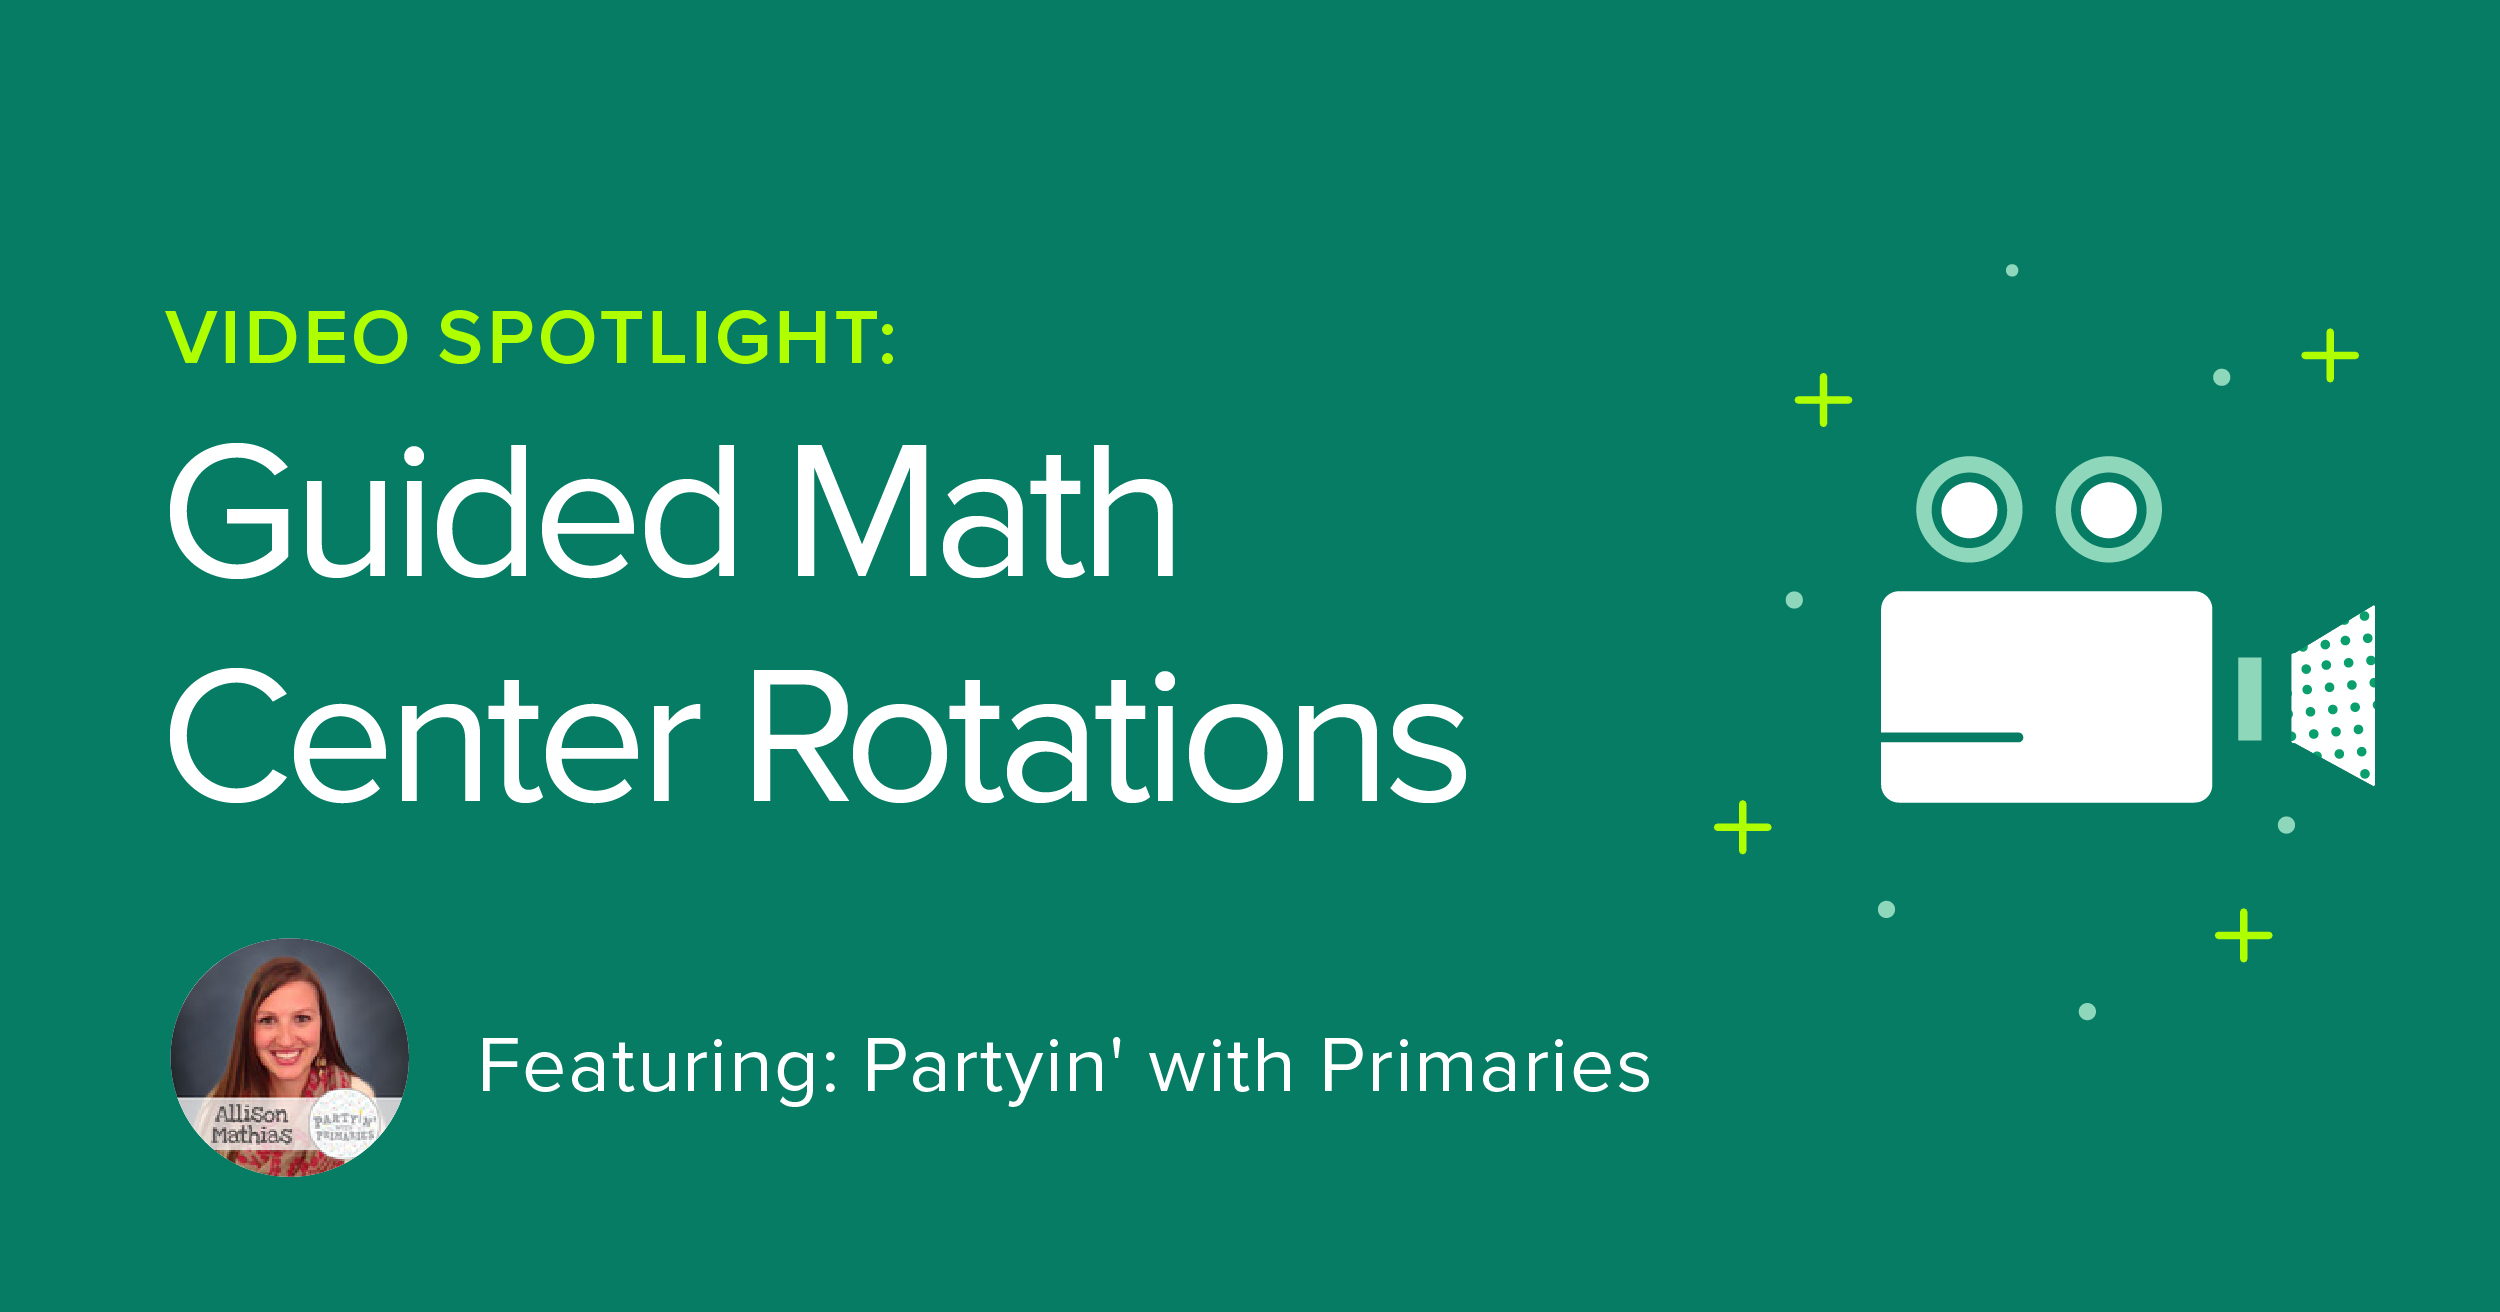 Take the plunge into teaching Guided Math in your classroom with four different centers to implement.